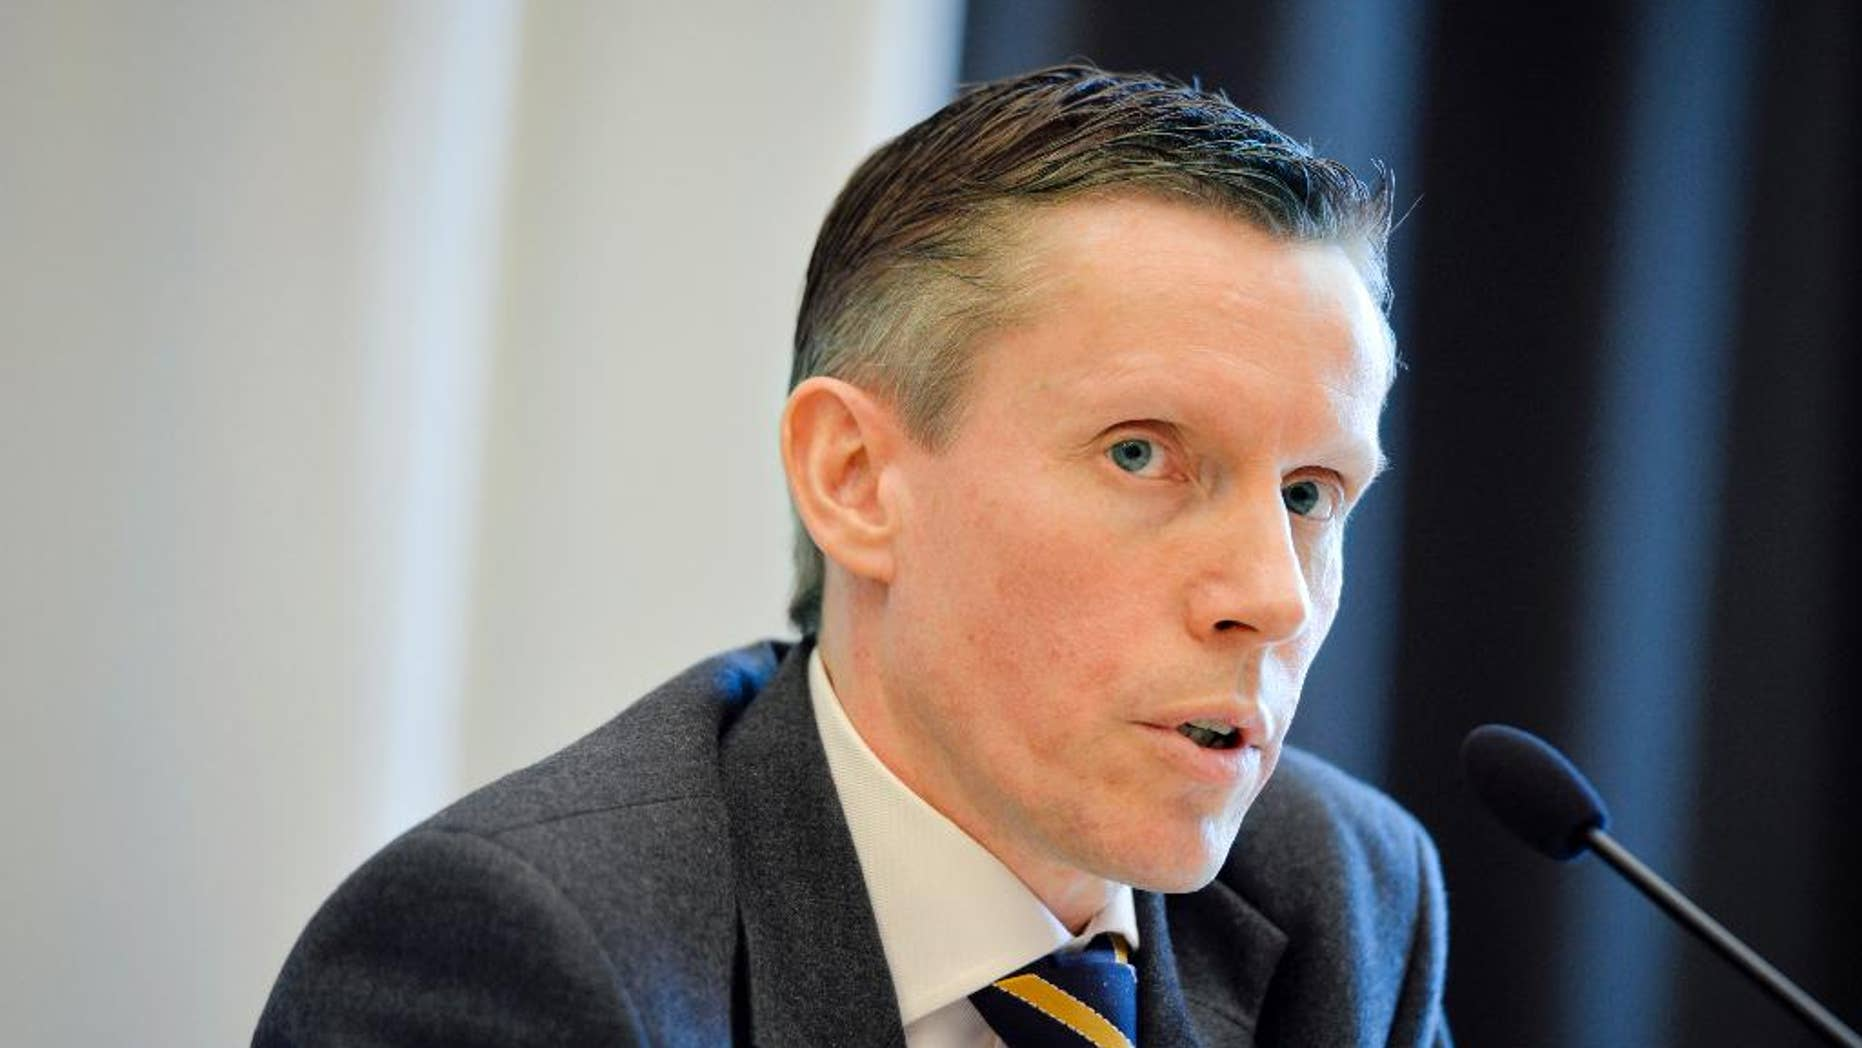 """Wilhelm Unge, chief analyst at Swedish security service SAPO, speaks during a press conference as SAPO released its annual report in Stockholm, Wednesday March 18, 2015. SAPO has accused Russia of conducting """"extensive"""" espionage operations, using as many as one-third of its diplomatic staff in the country for clandestine intelligence gathering. (AP Photo/Henrik Montgomery, TT) SWEDEN OUT"""